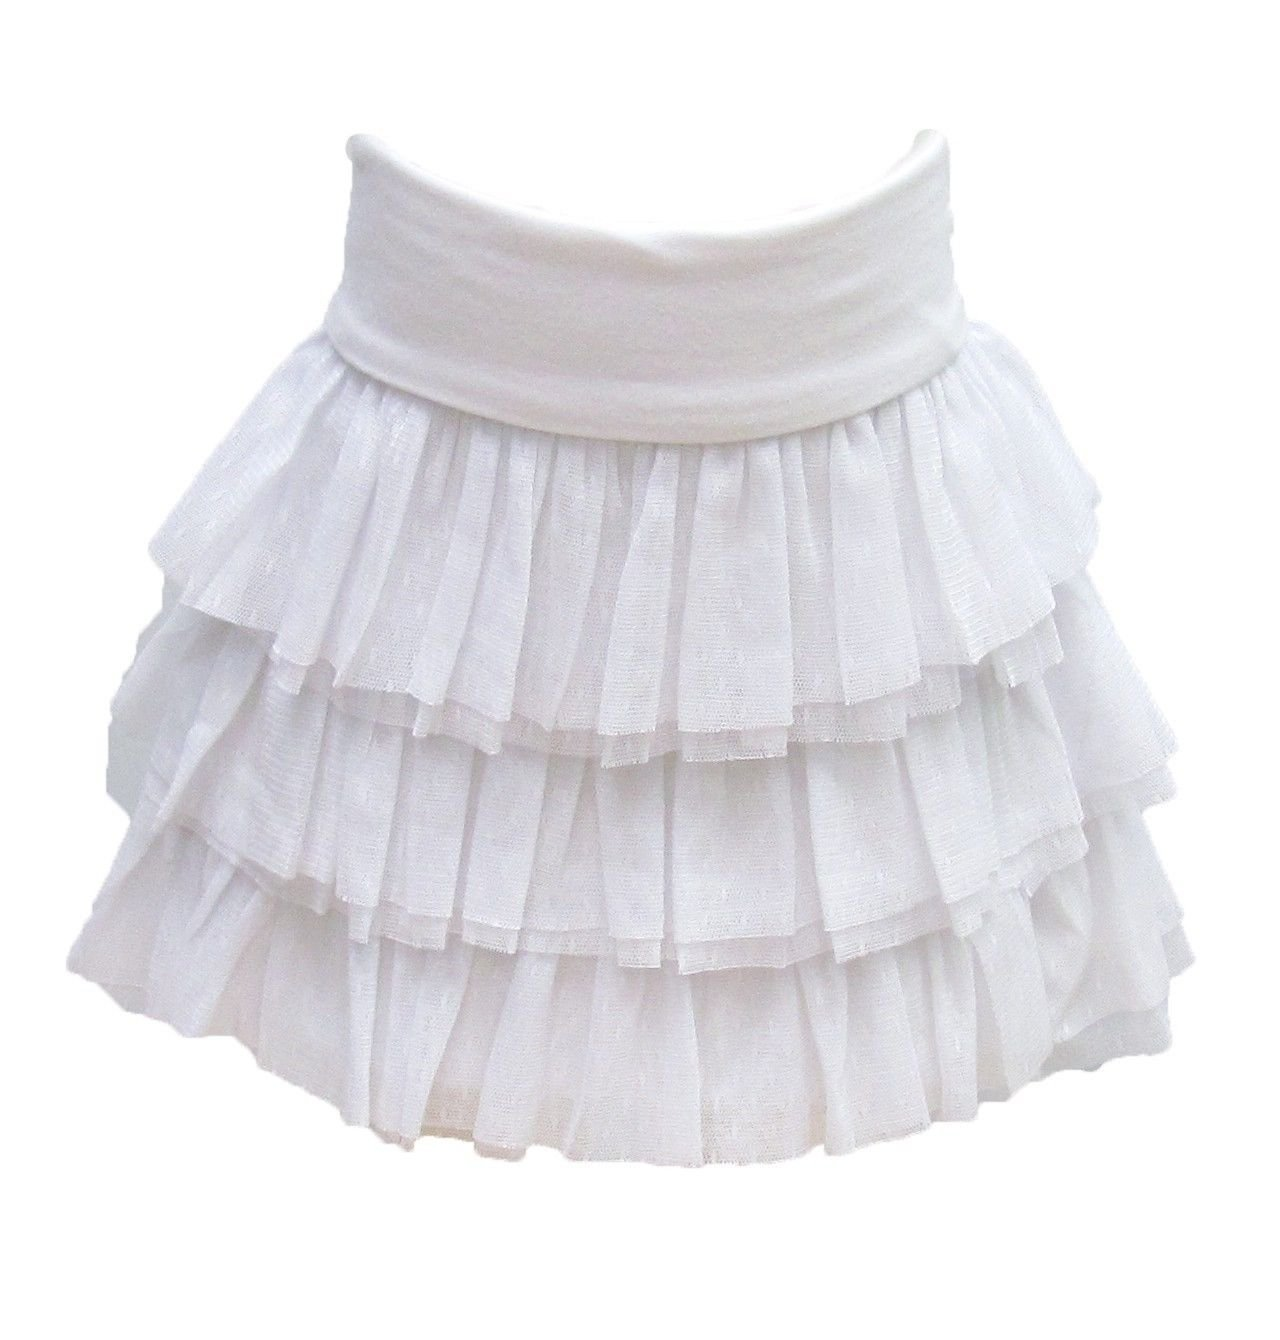 The Childrens Place Girls 5 Skirt Tulle Ruffle White with Fold Over Waistband